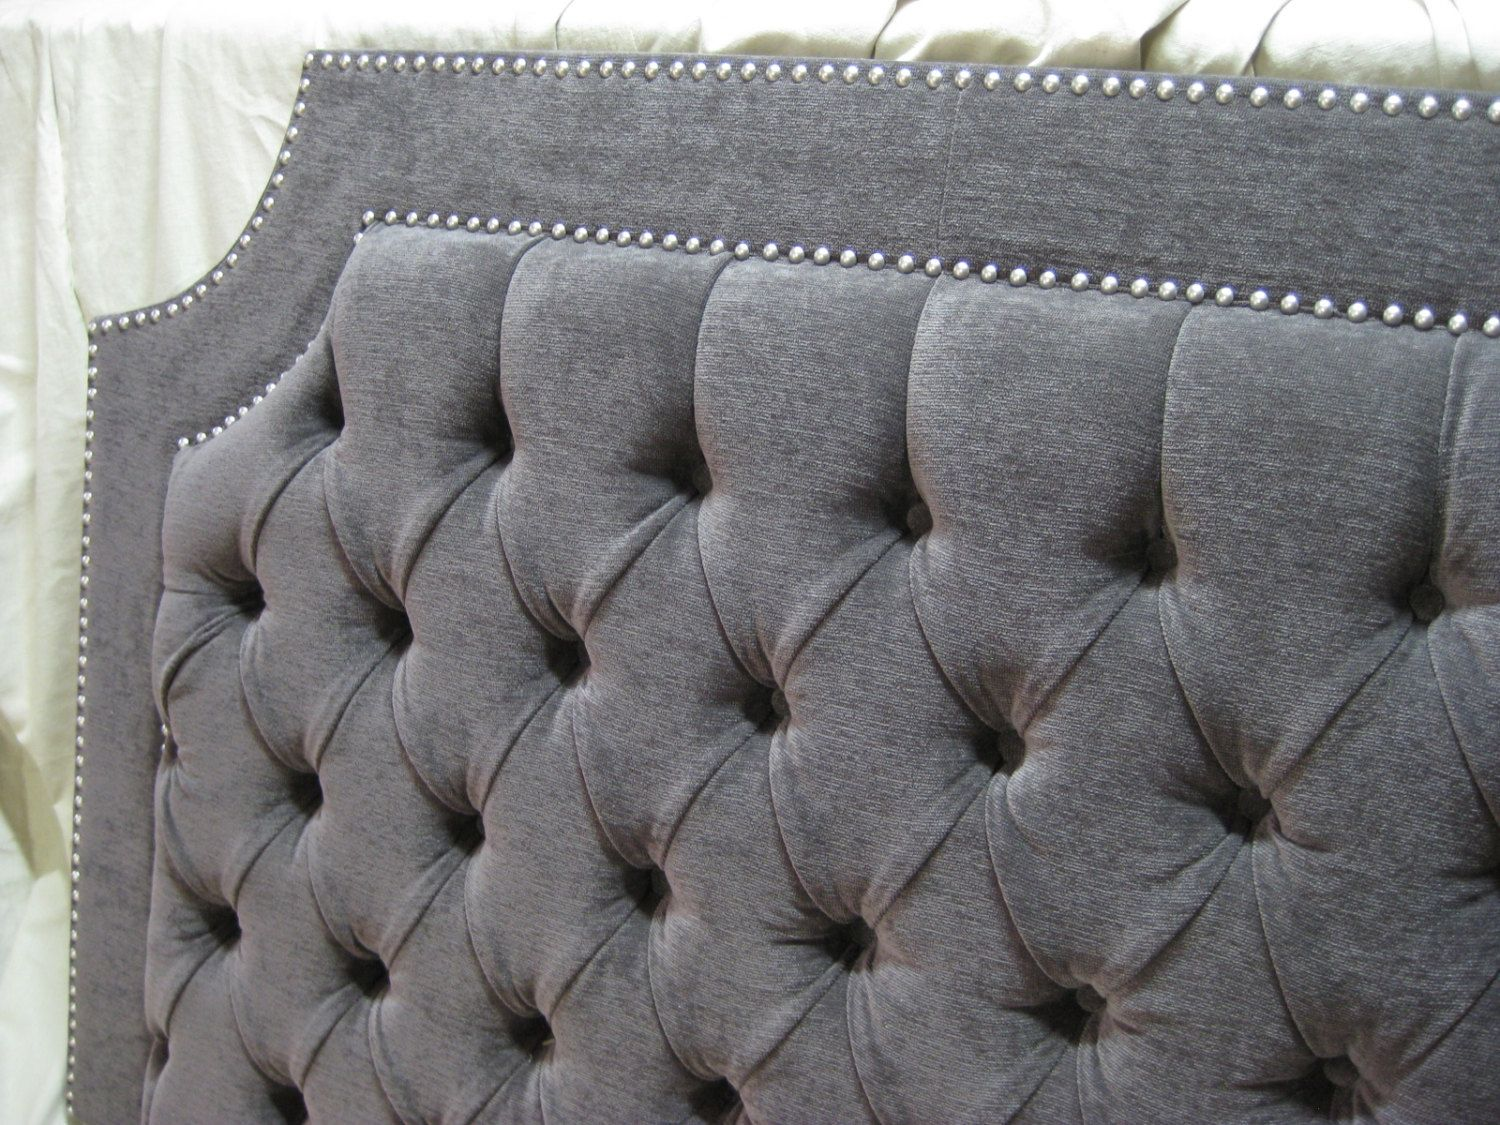 Gray Tufted Upholstered Headboard with Nickel Nailheads | DIY ...